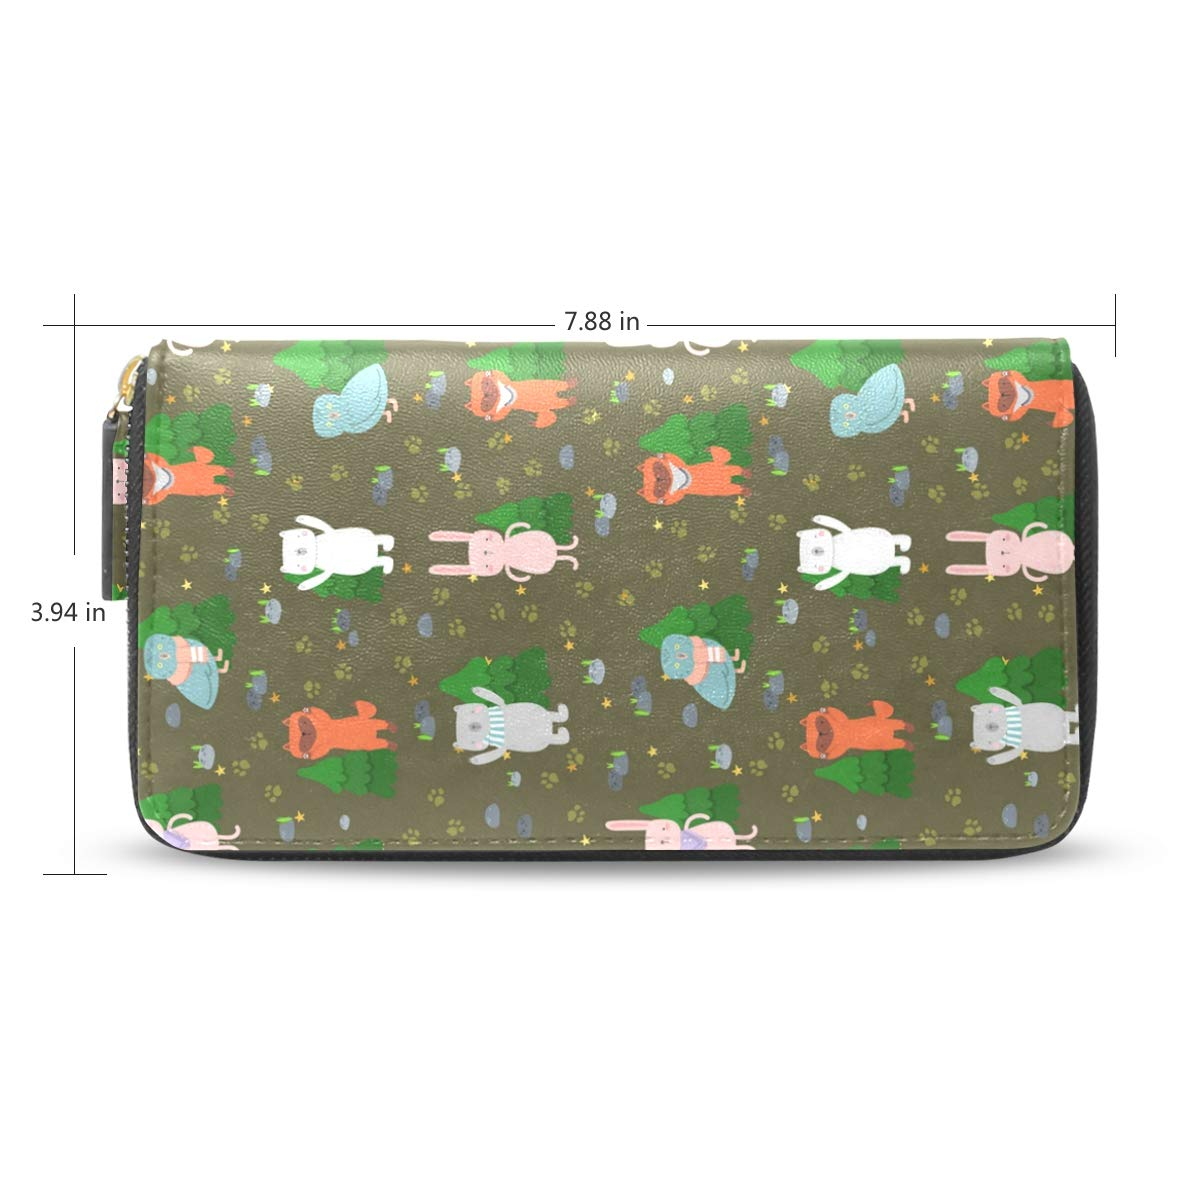 Women Dig Dinosaur With Tree Leather Wallet Large Capacity Zipper Travel Wristlet Bags Clutch Cellphone Bag